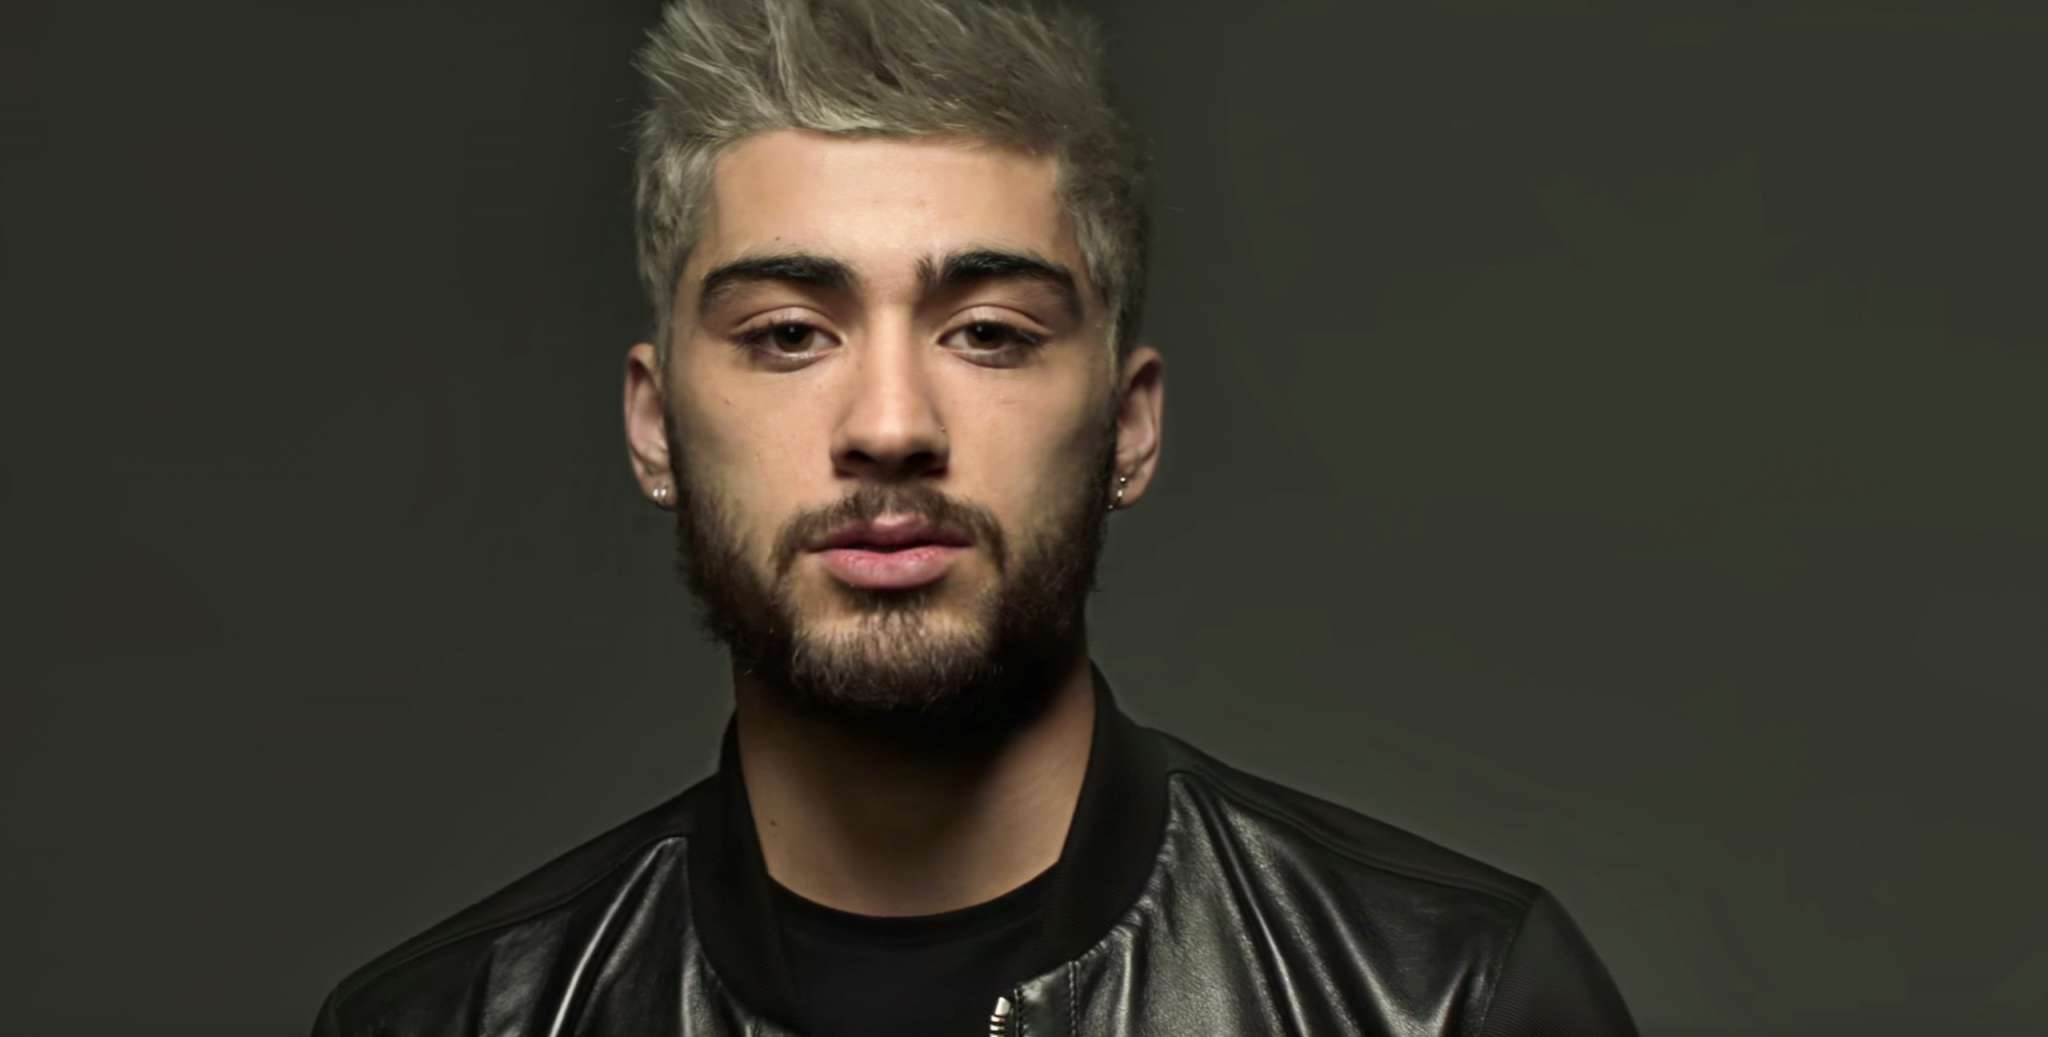 Guys What's Going On Between Zayn Malik And Gigi Hadid?